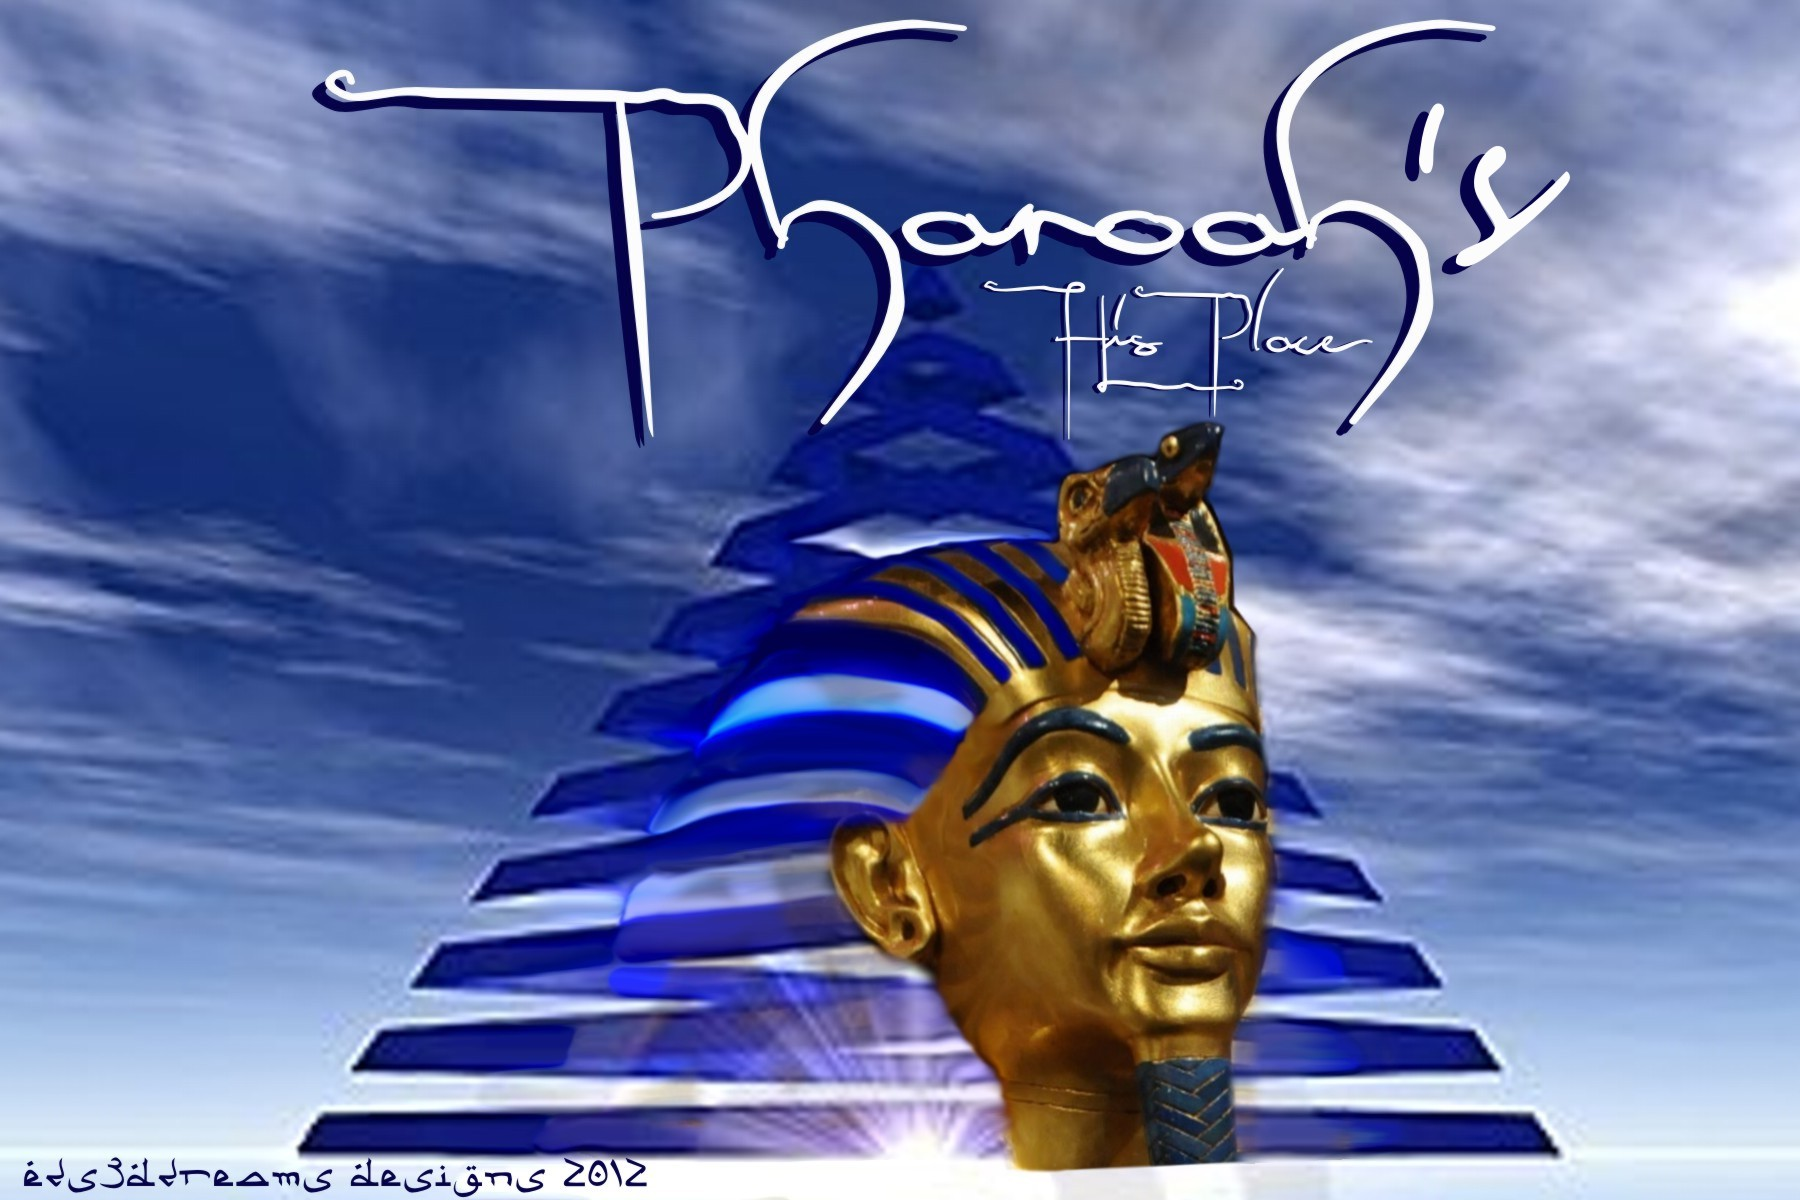 Pharaoh's...His Place